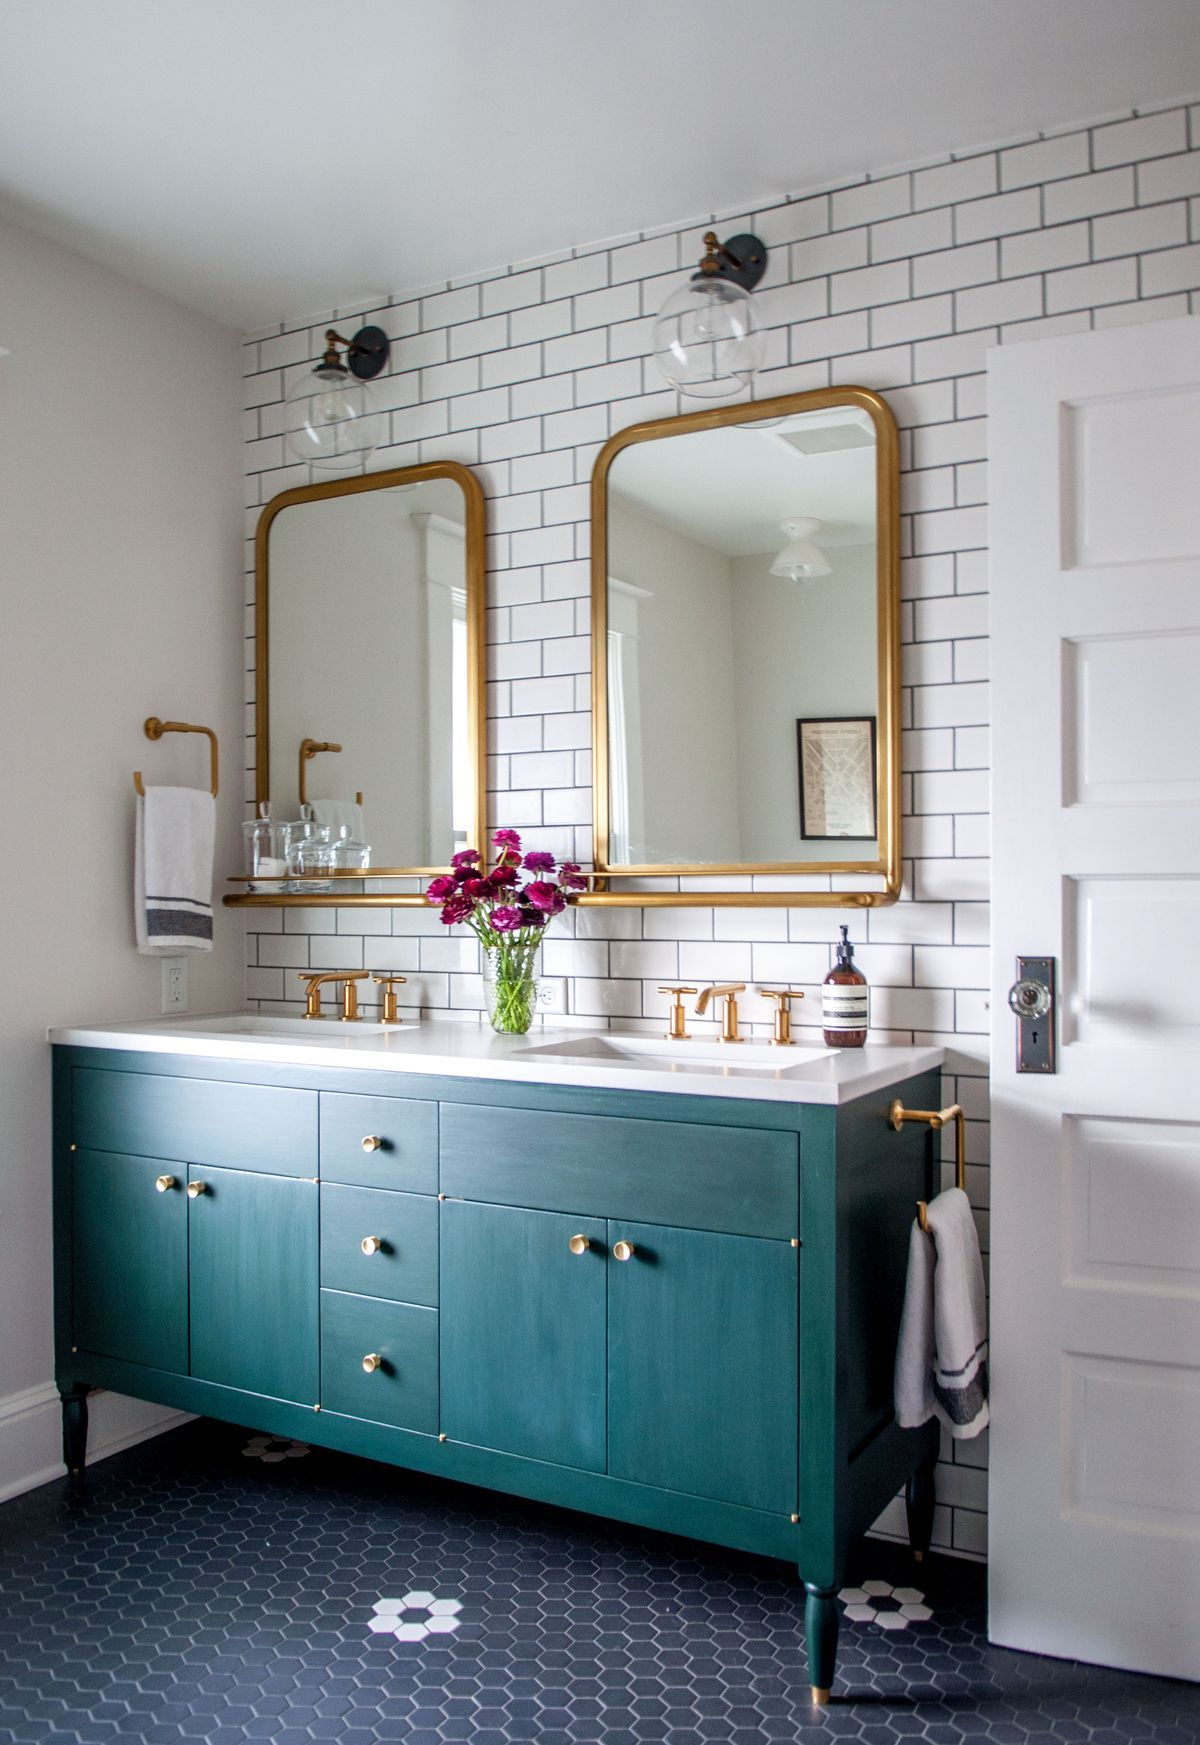 The unewu classic metro tile subway tiles powder room and vanities